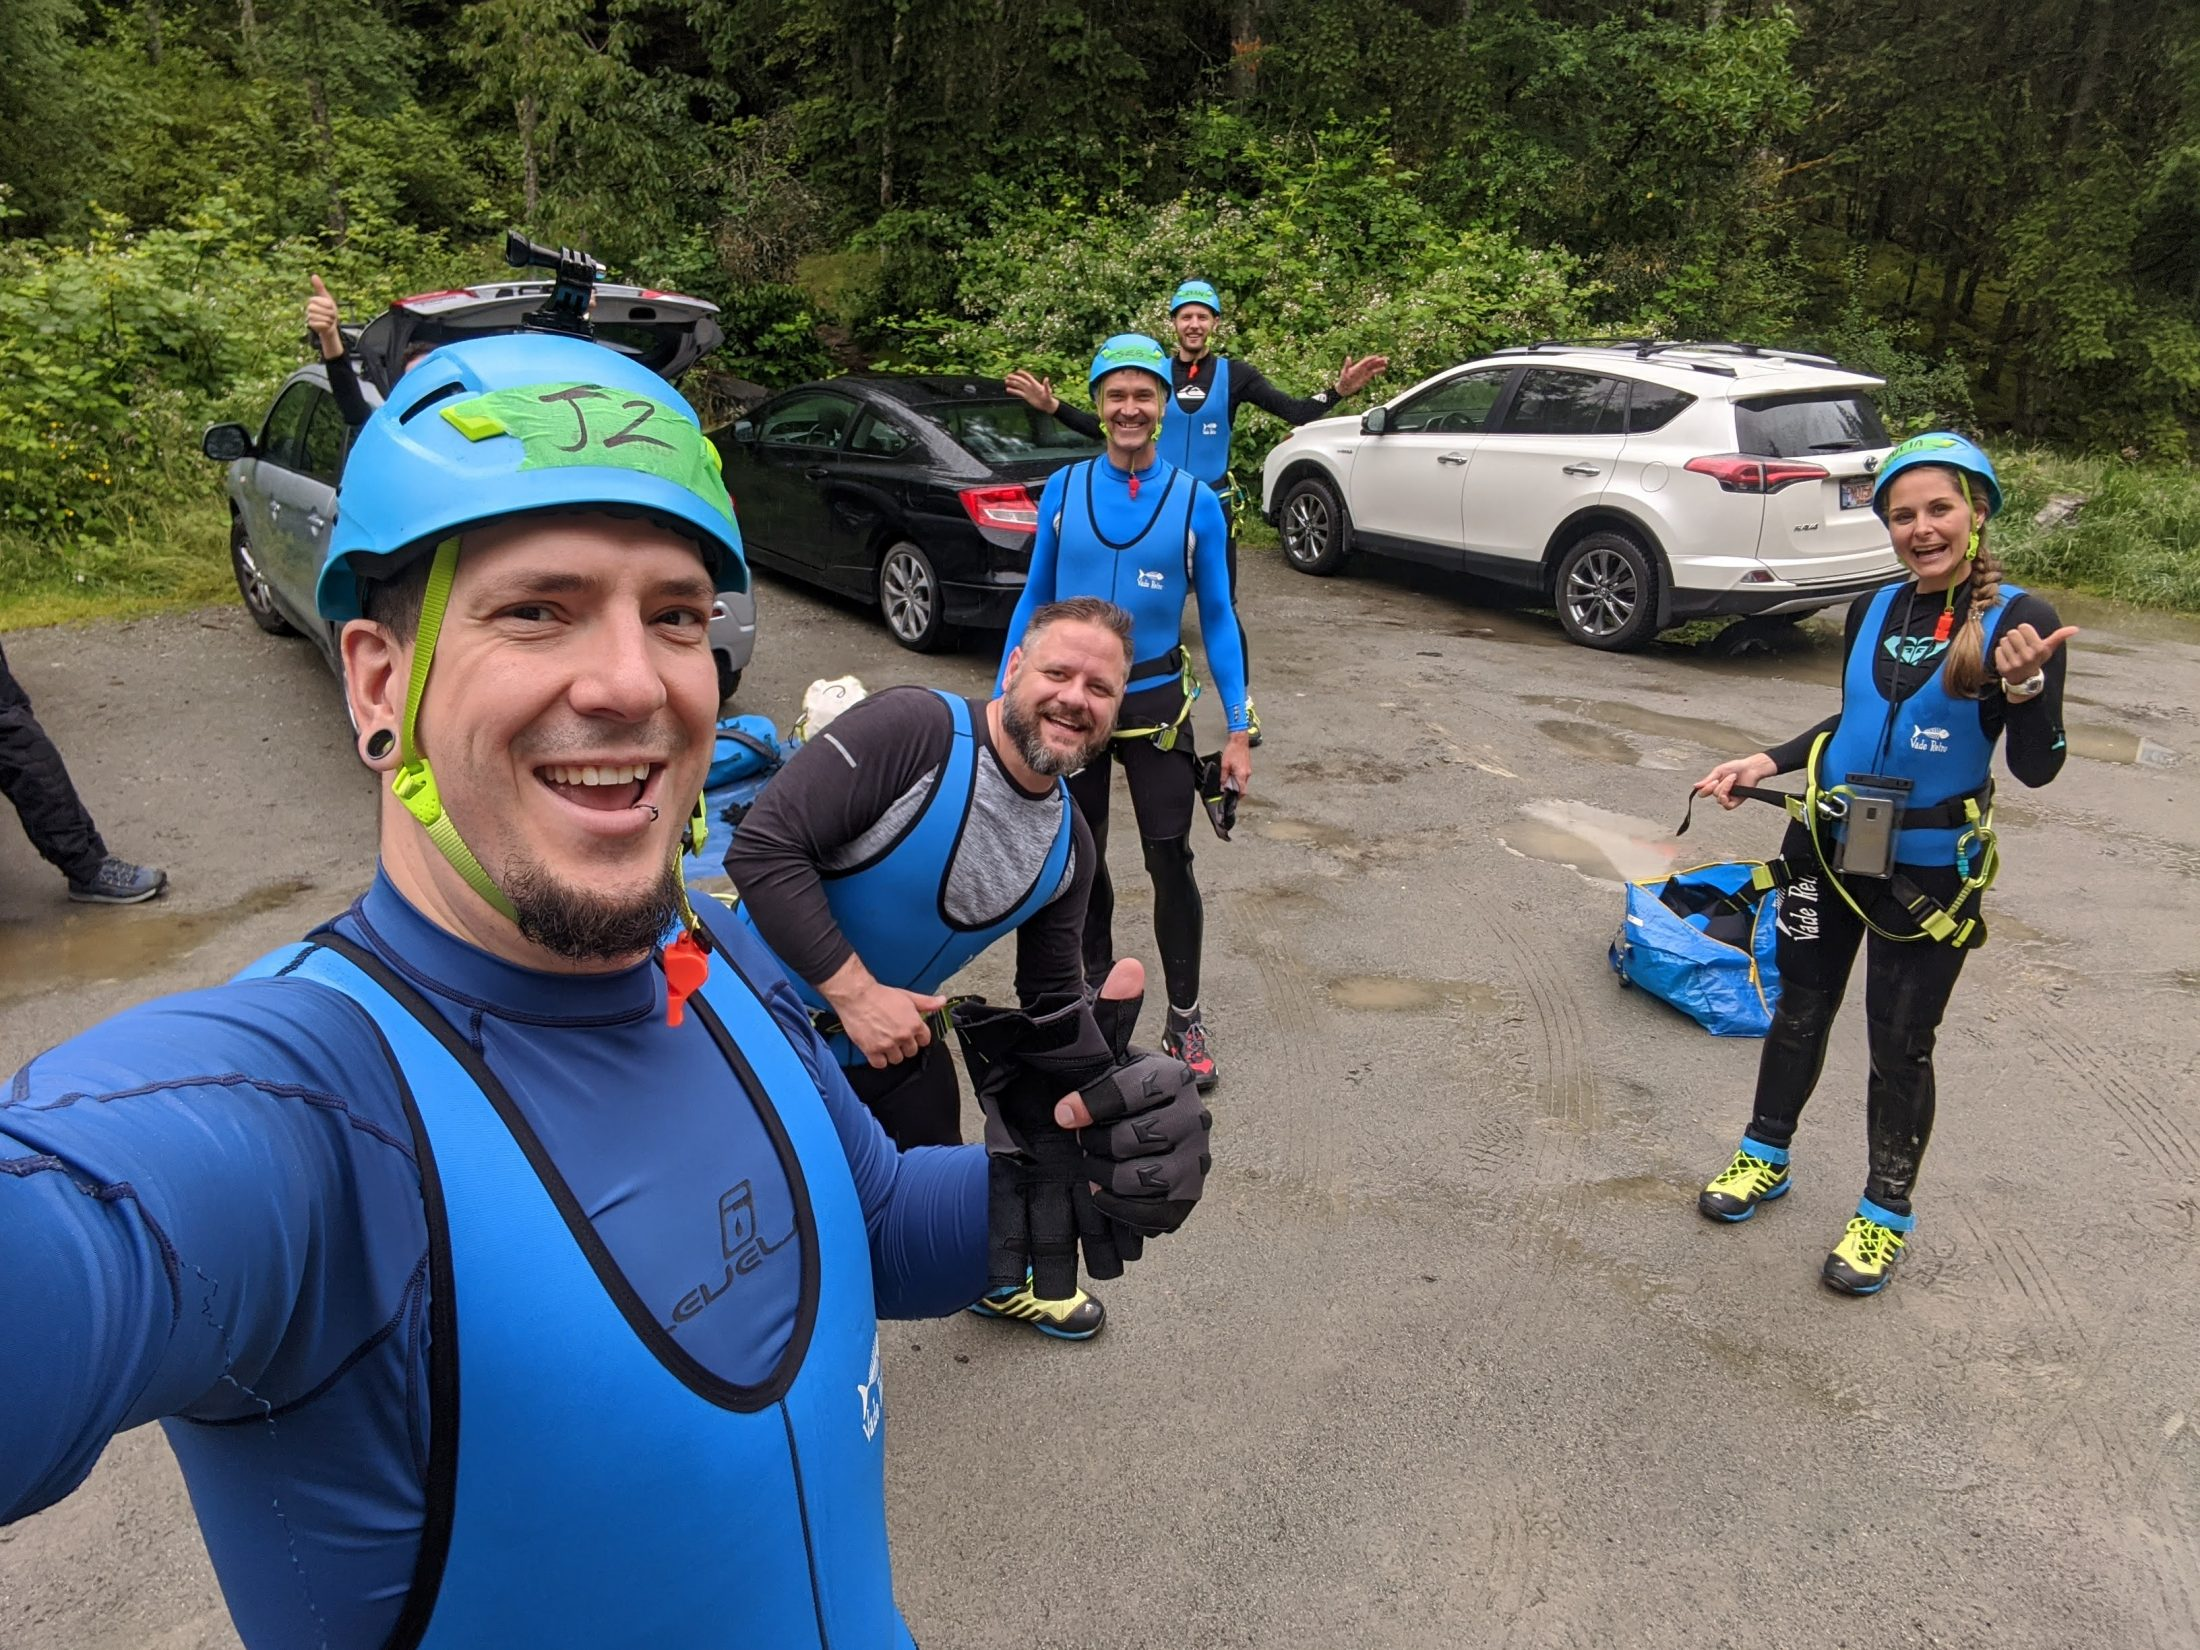 A Group Of People Dressed In Canyoning Gear Give A Thumbs Up In A Car Park Before Starting An Adventure